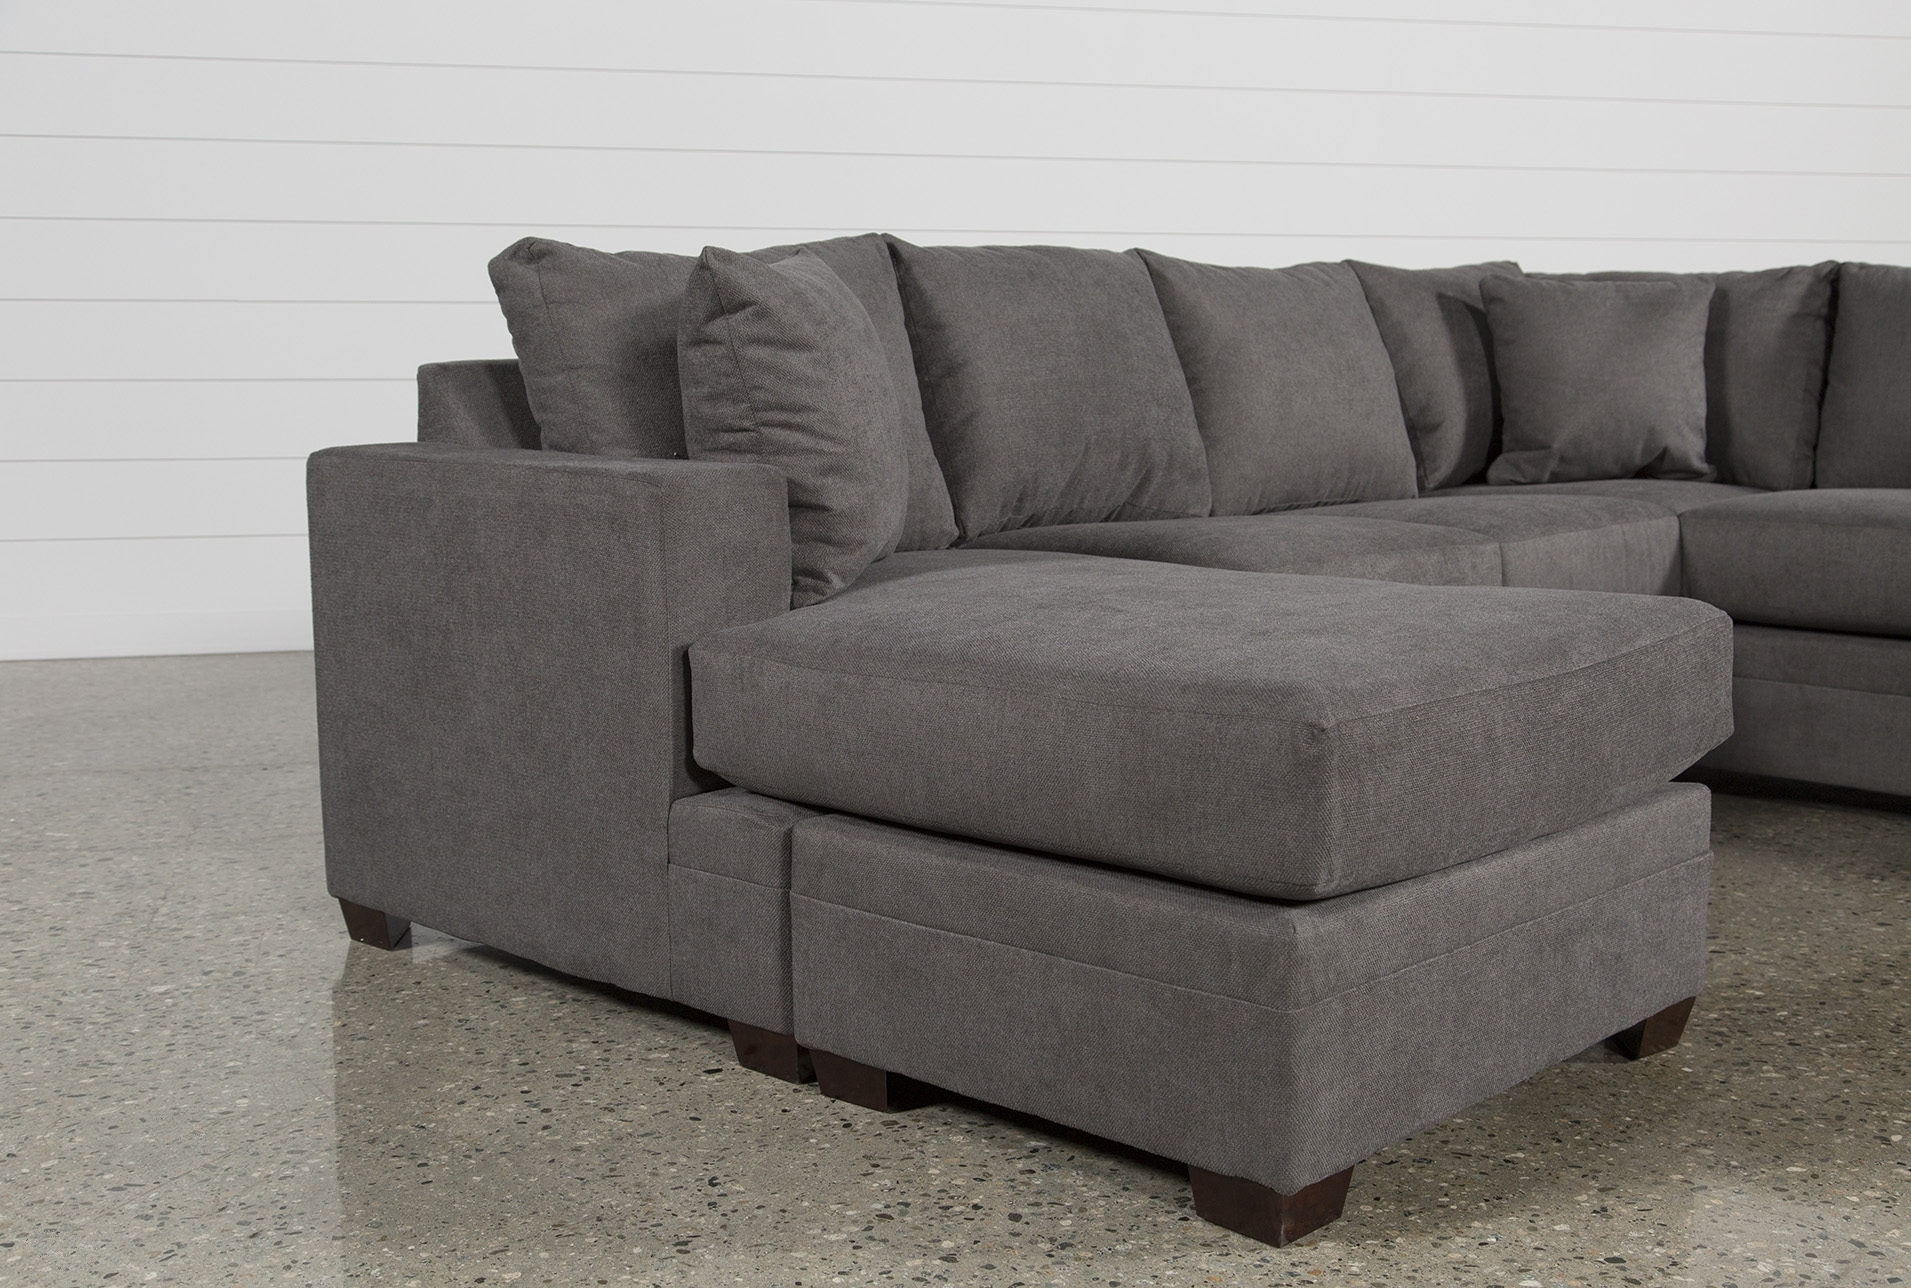 Kerri 2 Piece Sectional W/laf Chaise | Products | Pinterest With Regard To Kerri 2 Piece Sectionals With Raf Chaise (Image 15 of 25)